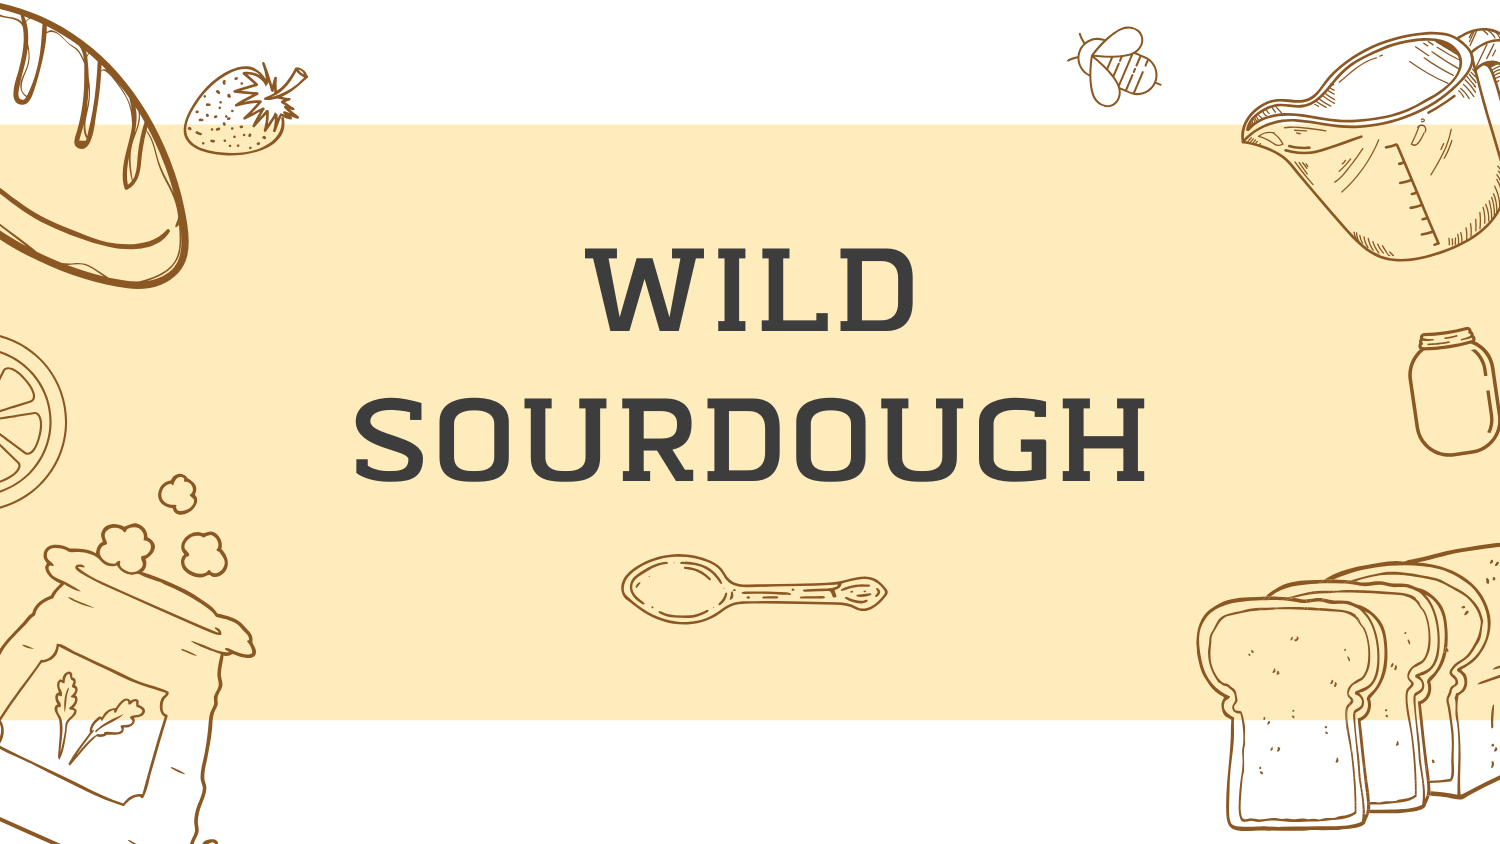 The Rob Dunn Lab Wild Sourdough Project